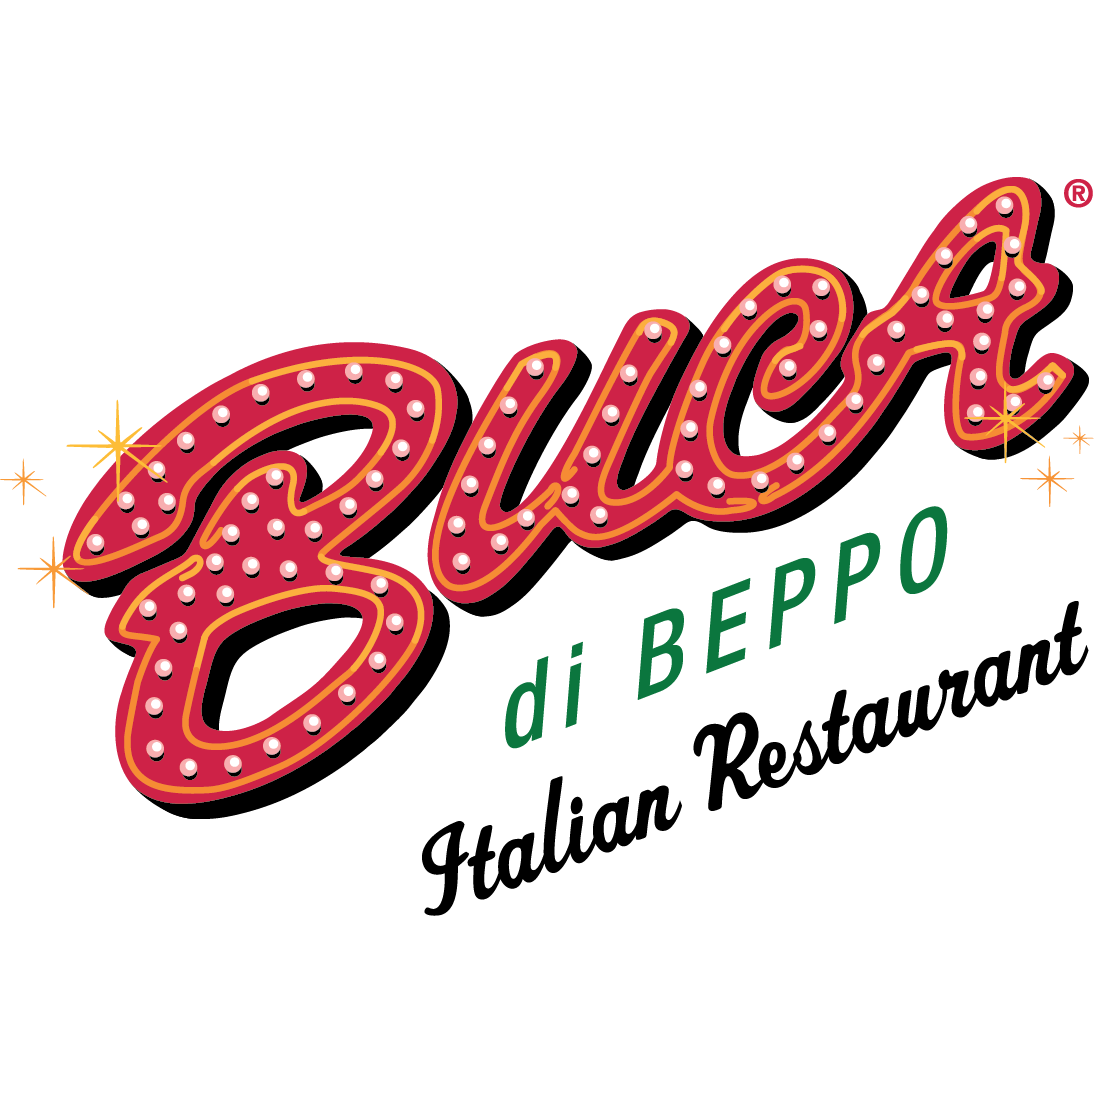 Buca di Beppo Italian Restaurant - Salt Lake City, UT - Restaurants